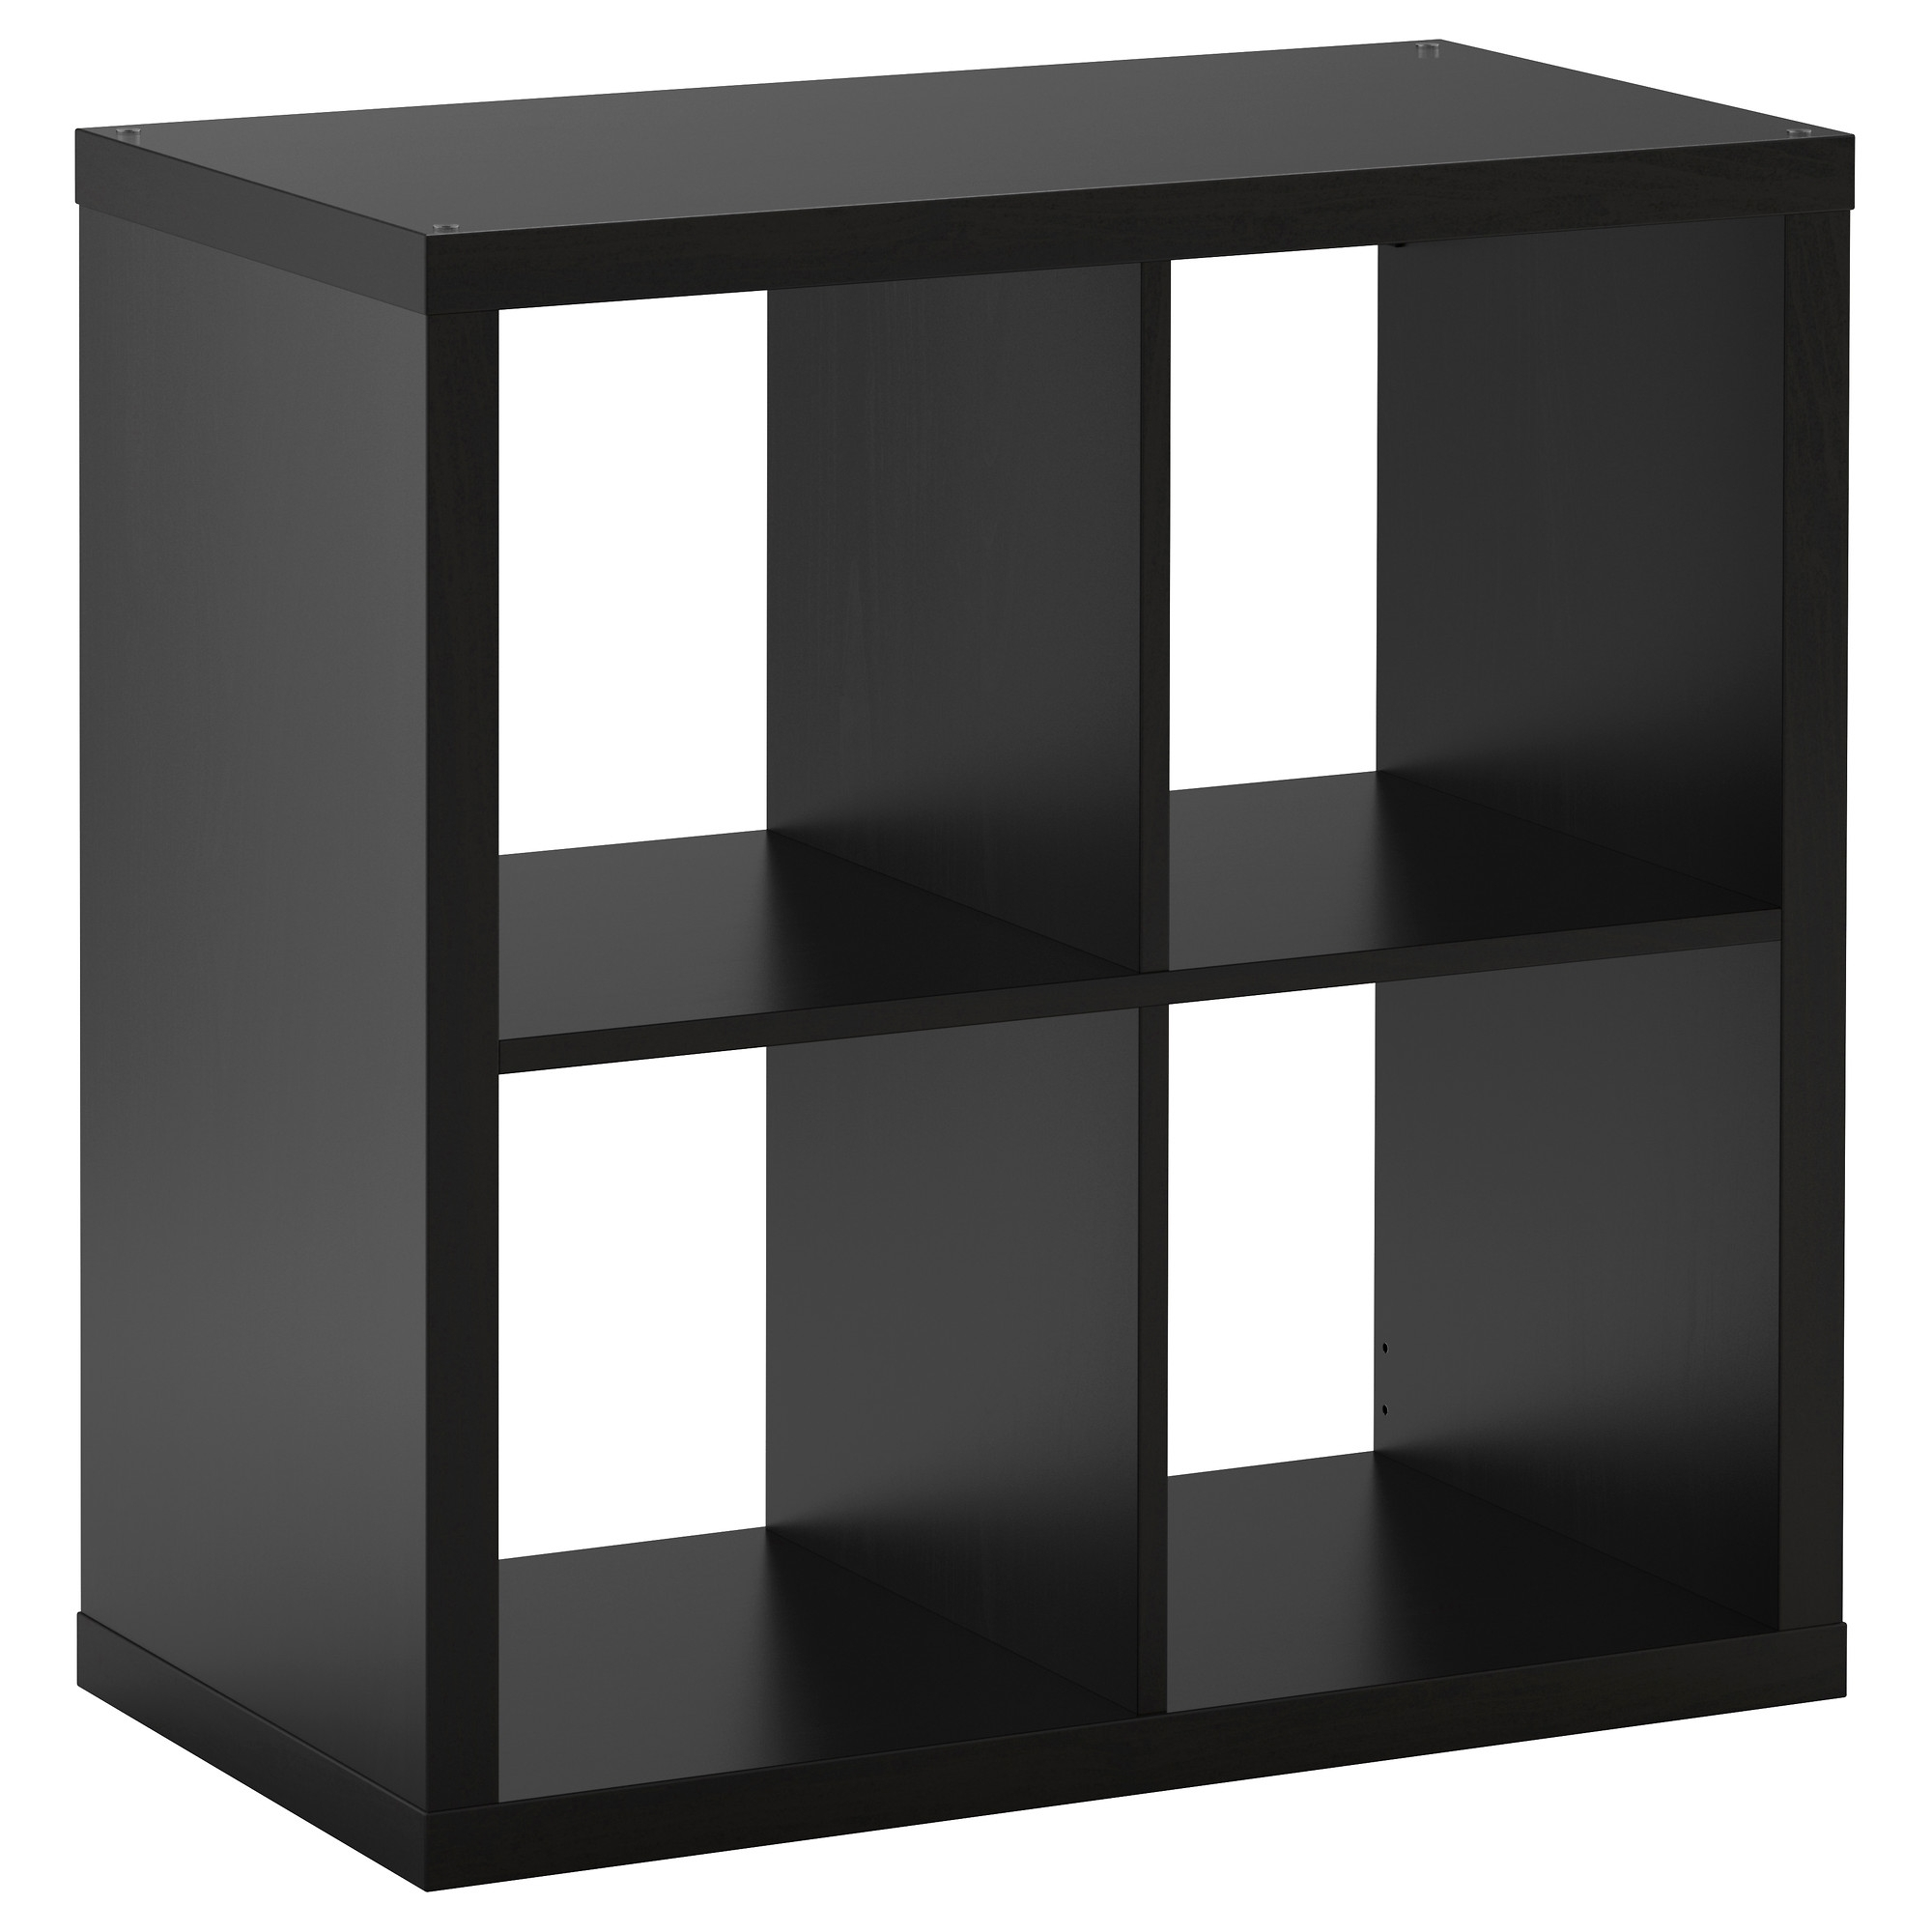 Ikea Expedit Bookcases Intended For Most Up To Date Kallax Shelf Unit – Birch Effect – Ikea (View 2 of 15)